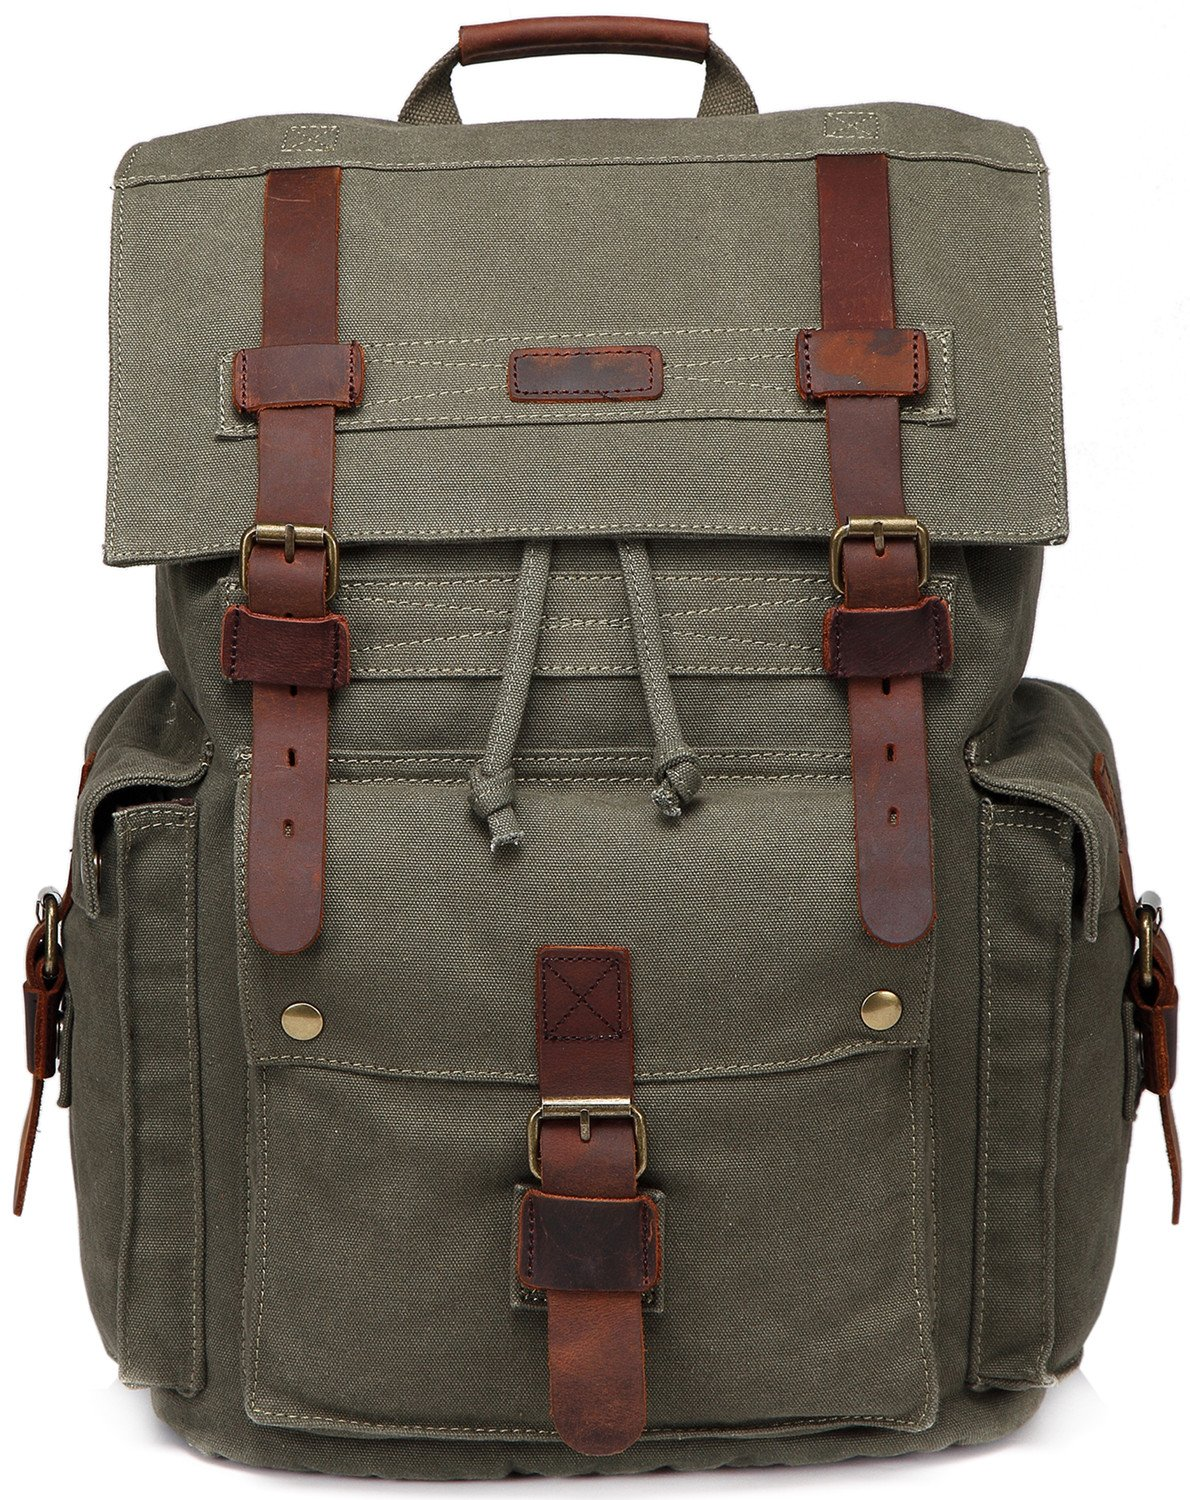 0691e8ff2d Amazon.com  Canvas Laptop Backpack Unisex Vintage Leather School Business  Travel Hiking Daypack Computers Casual Outdoor Rucksack (Army green)  SUPON